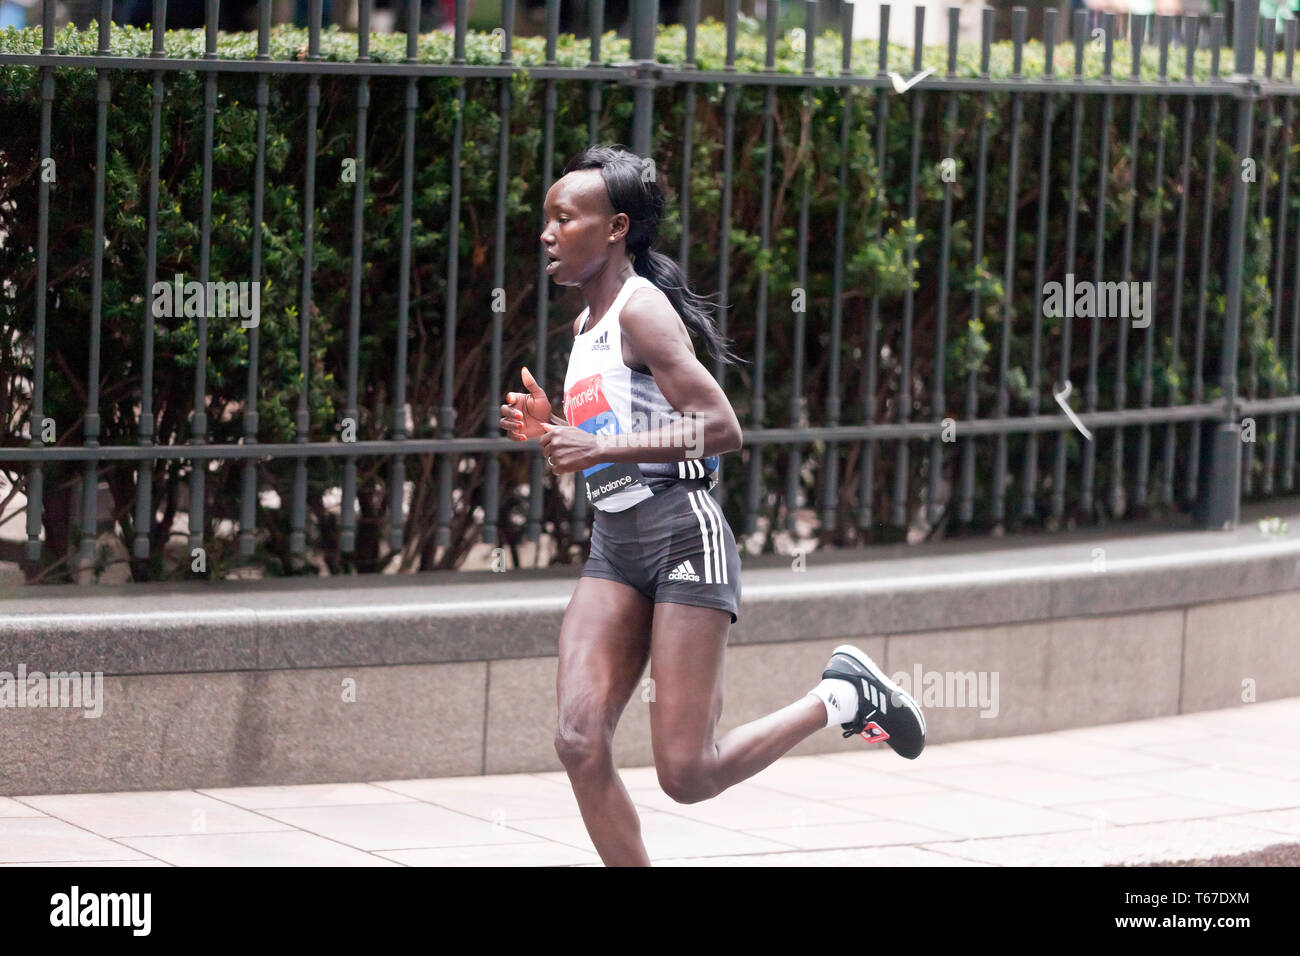 Kenyan distance runner, Mary Keitany competing in the Elite women's 2019 London Marathon. Mary went on to finish 5th in a time of 02:20:58 - Stock Image